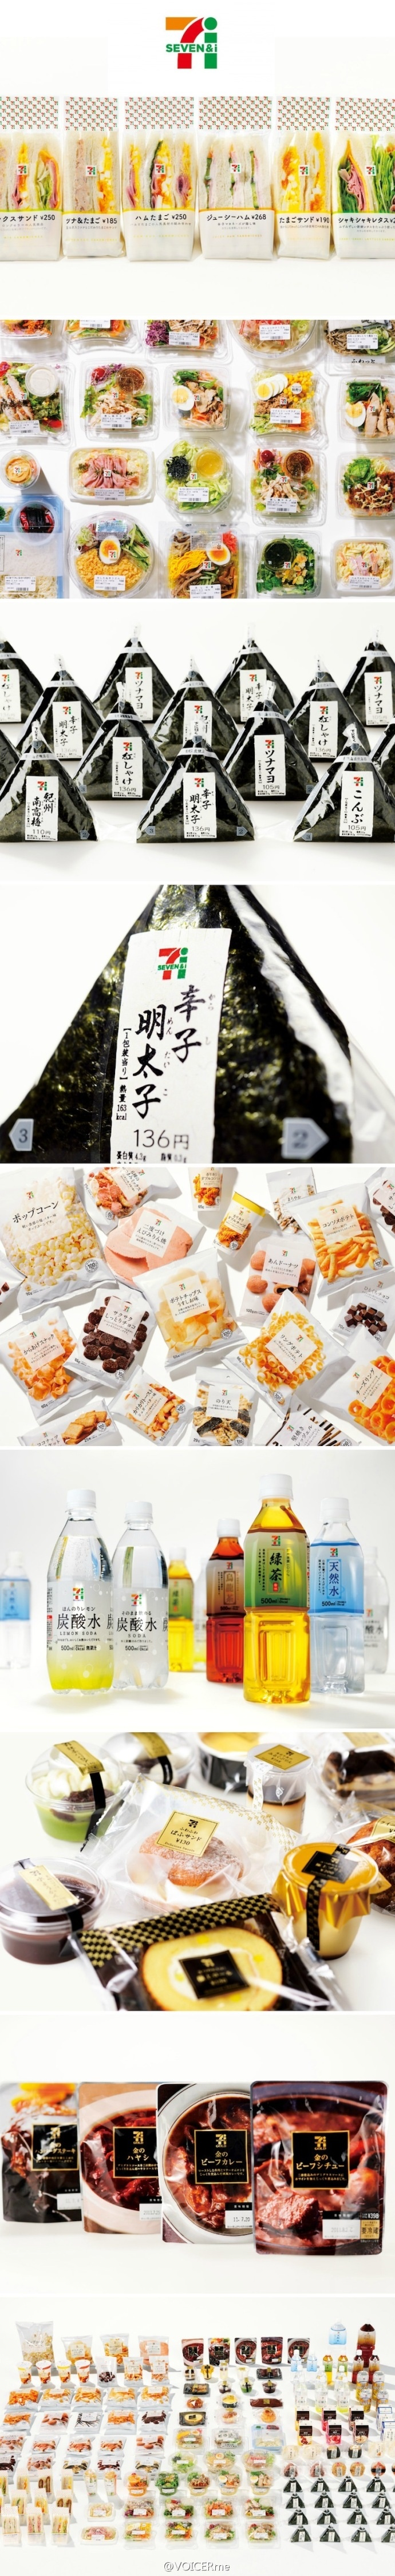 seven eleven food products in japan